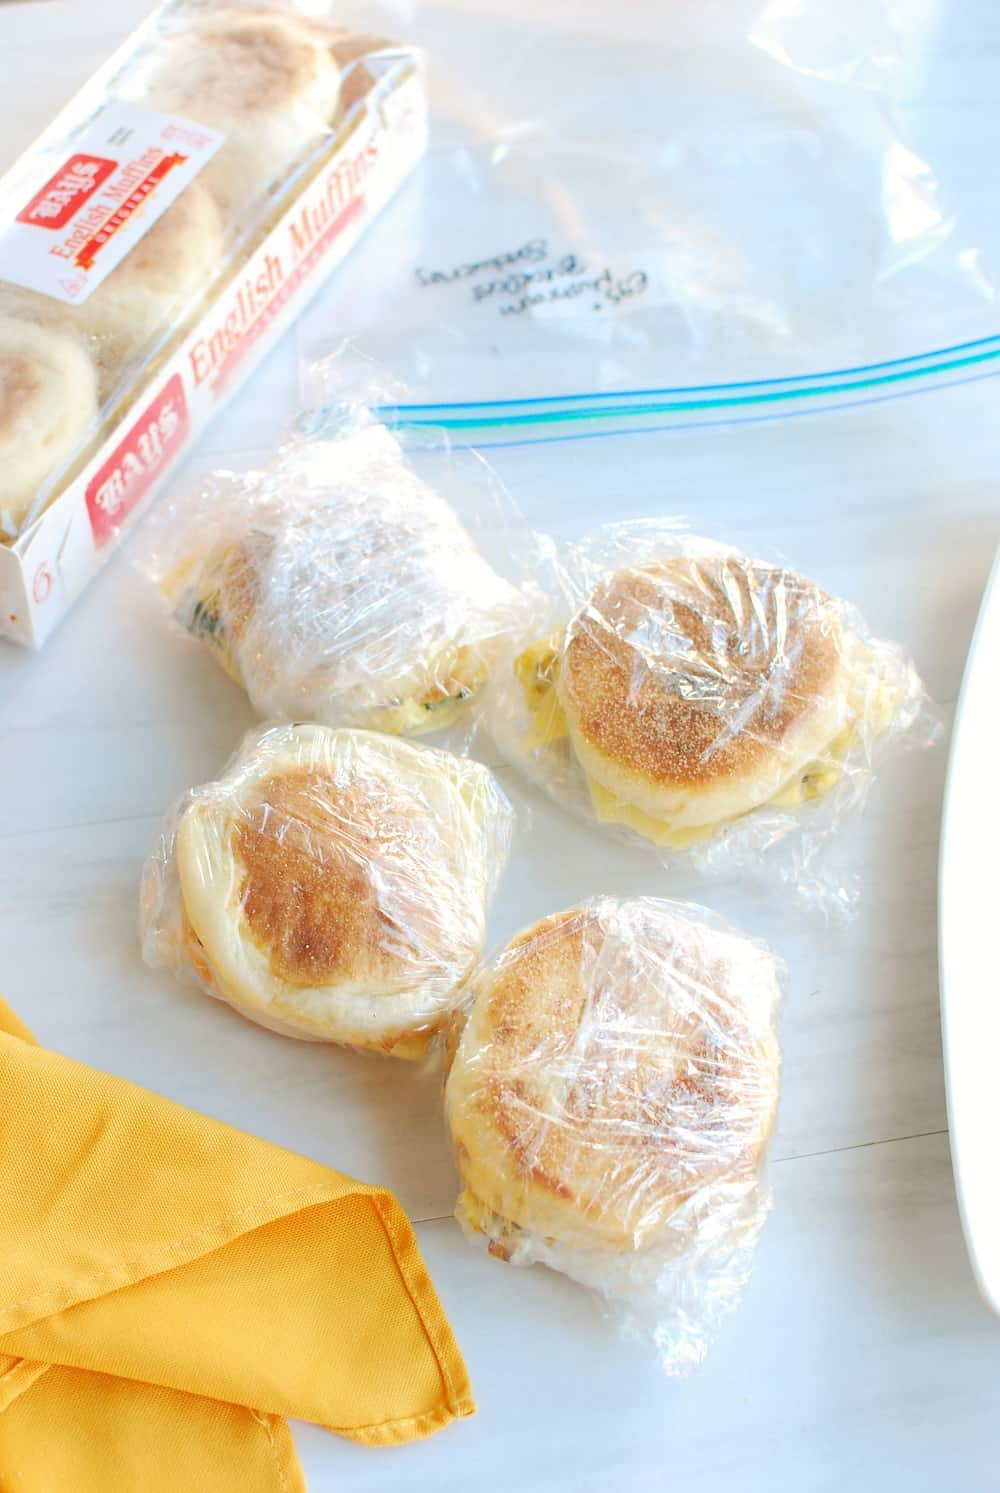 Four meal prep breakfast sandwiches being wrapped to put in the freezer